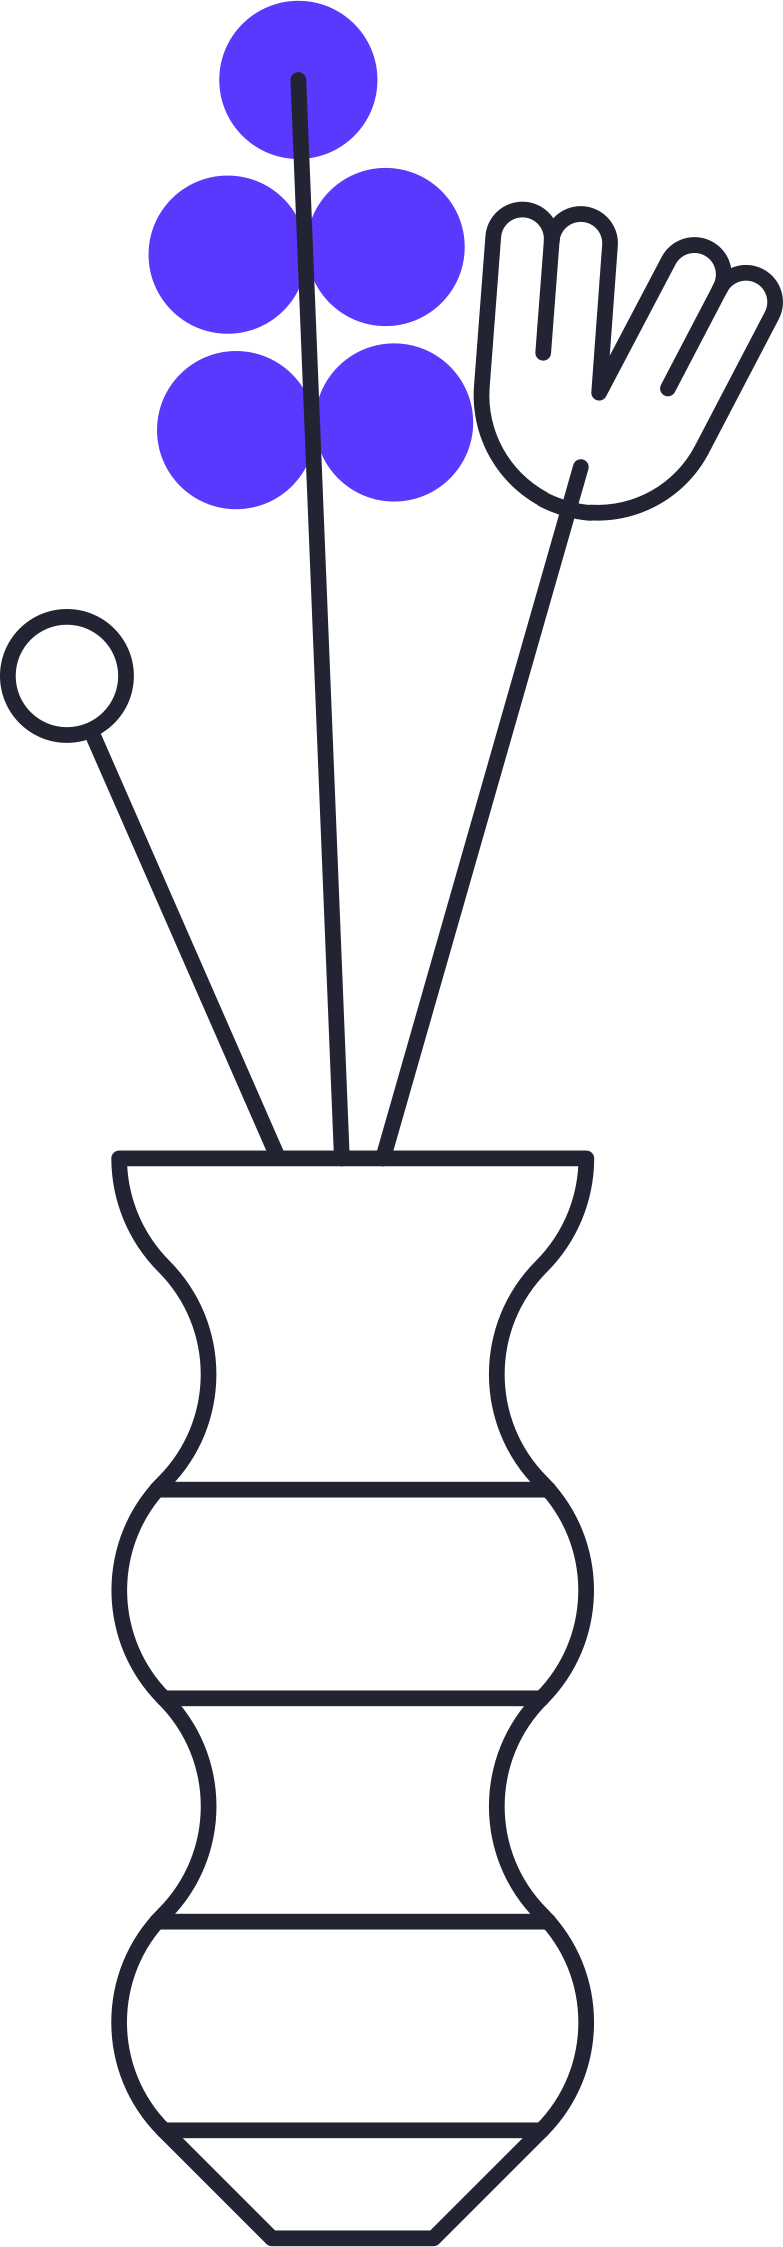 growing up  flowers in vase Clipart illustration in PNG, SVG